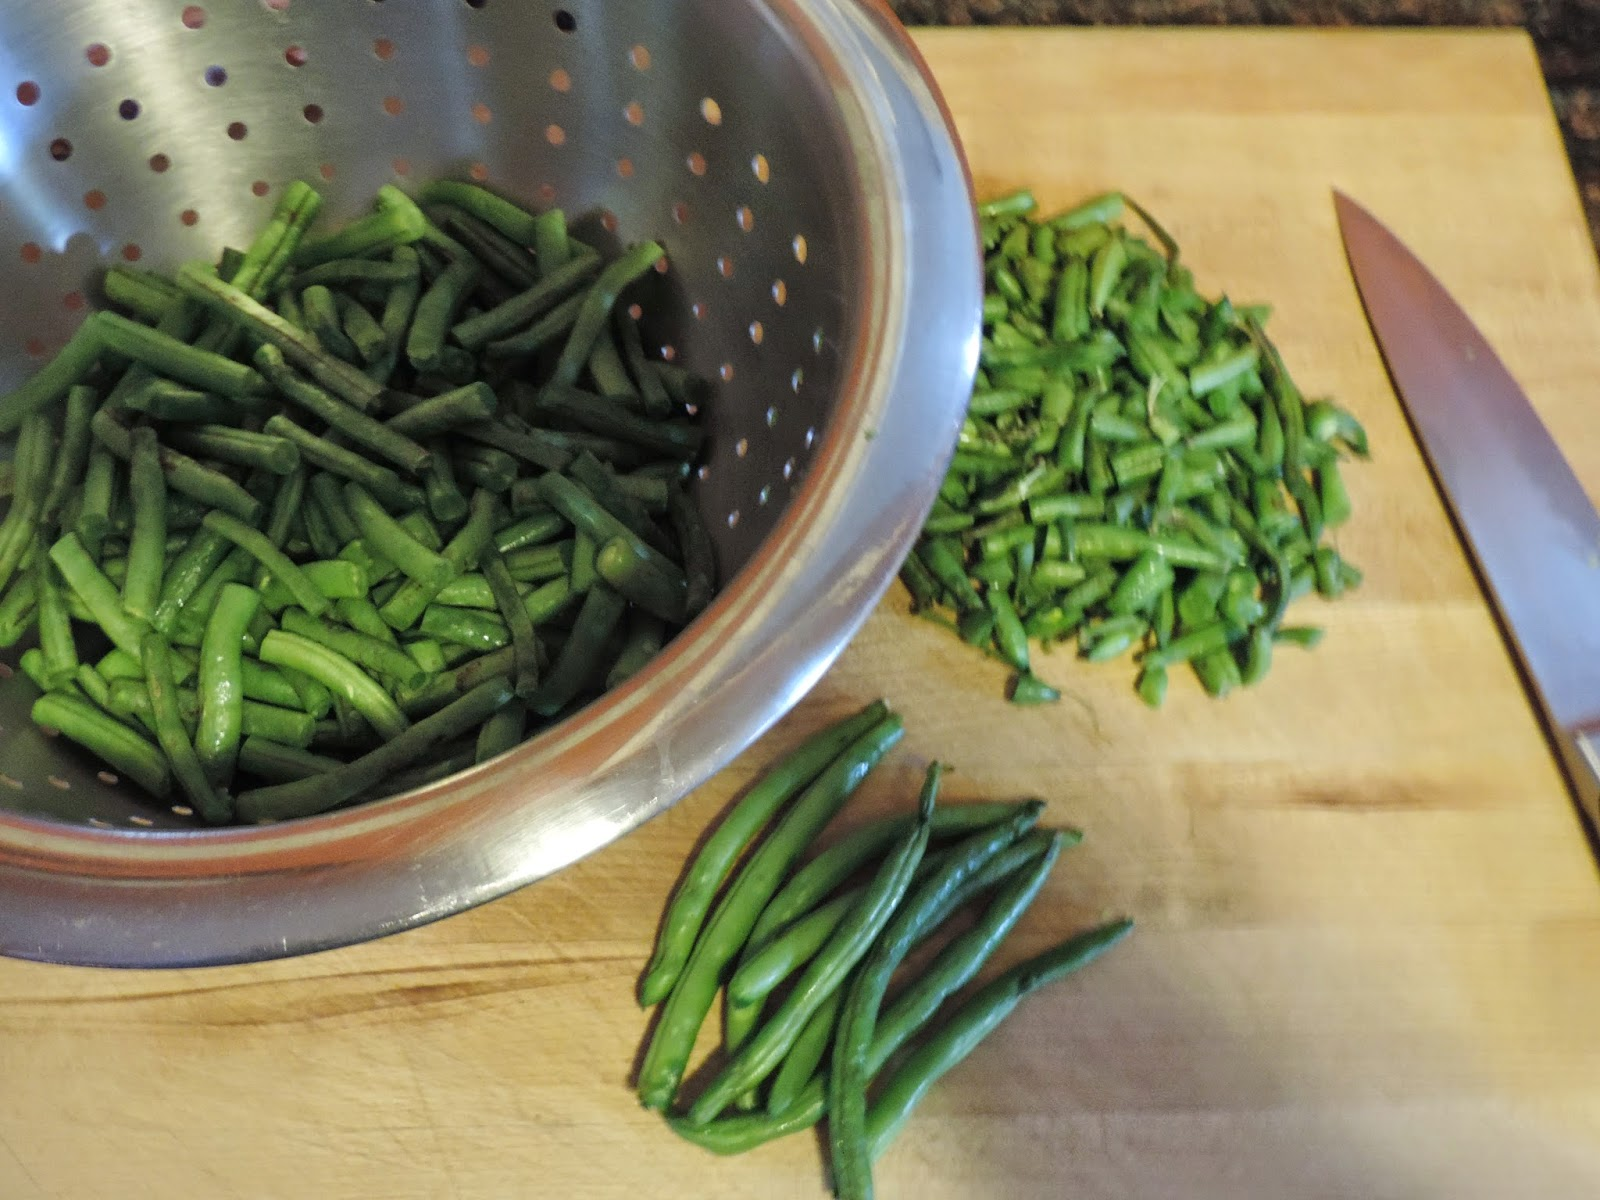 The green beans being trimmed and put in a strainer.